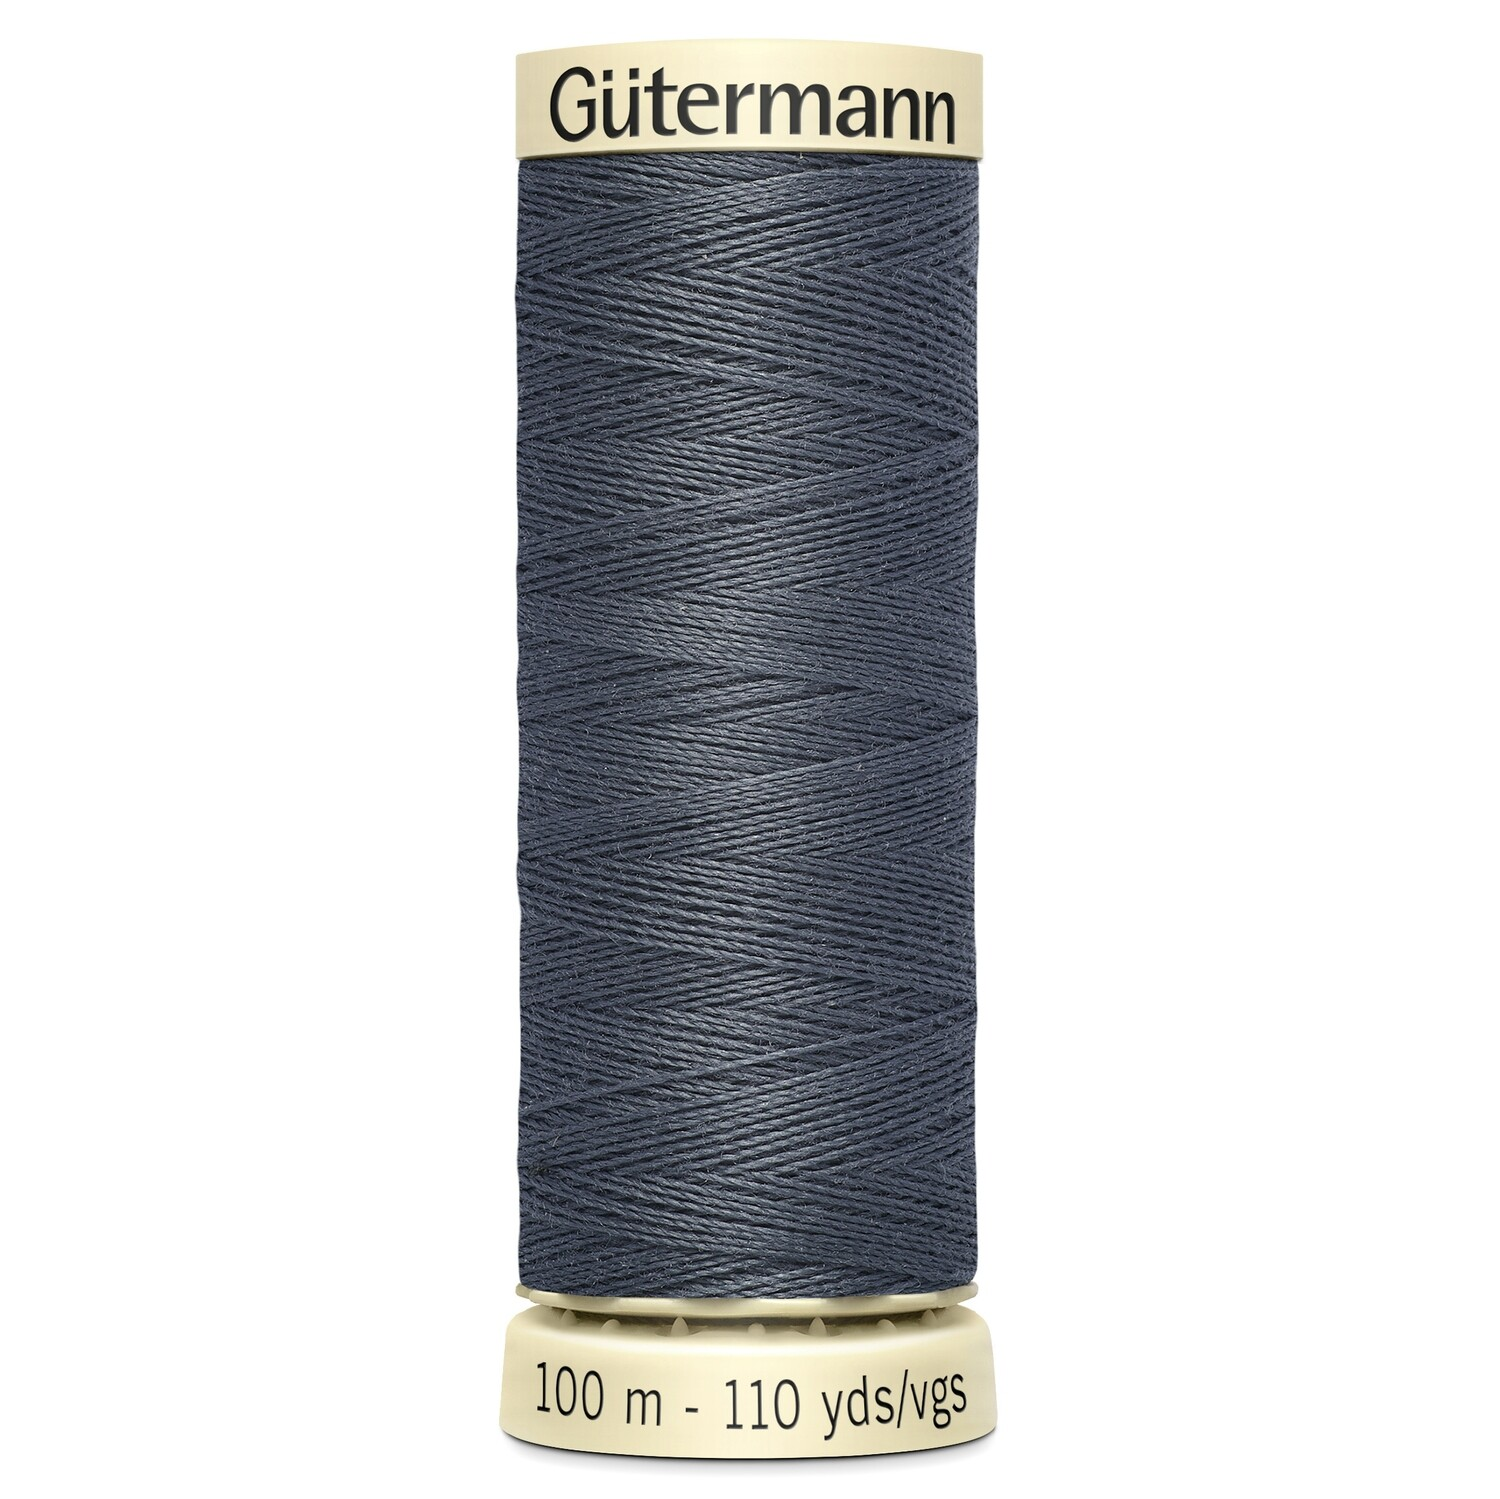 Gutermann Sew-All thread 93